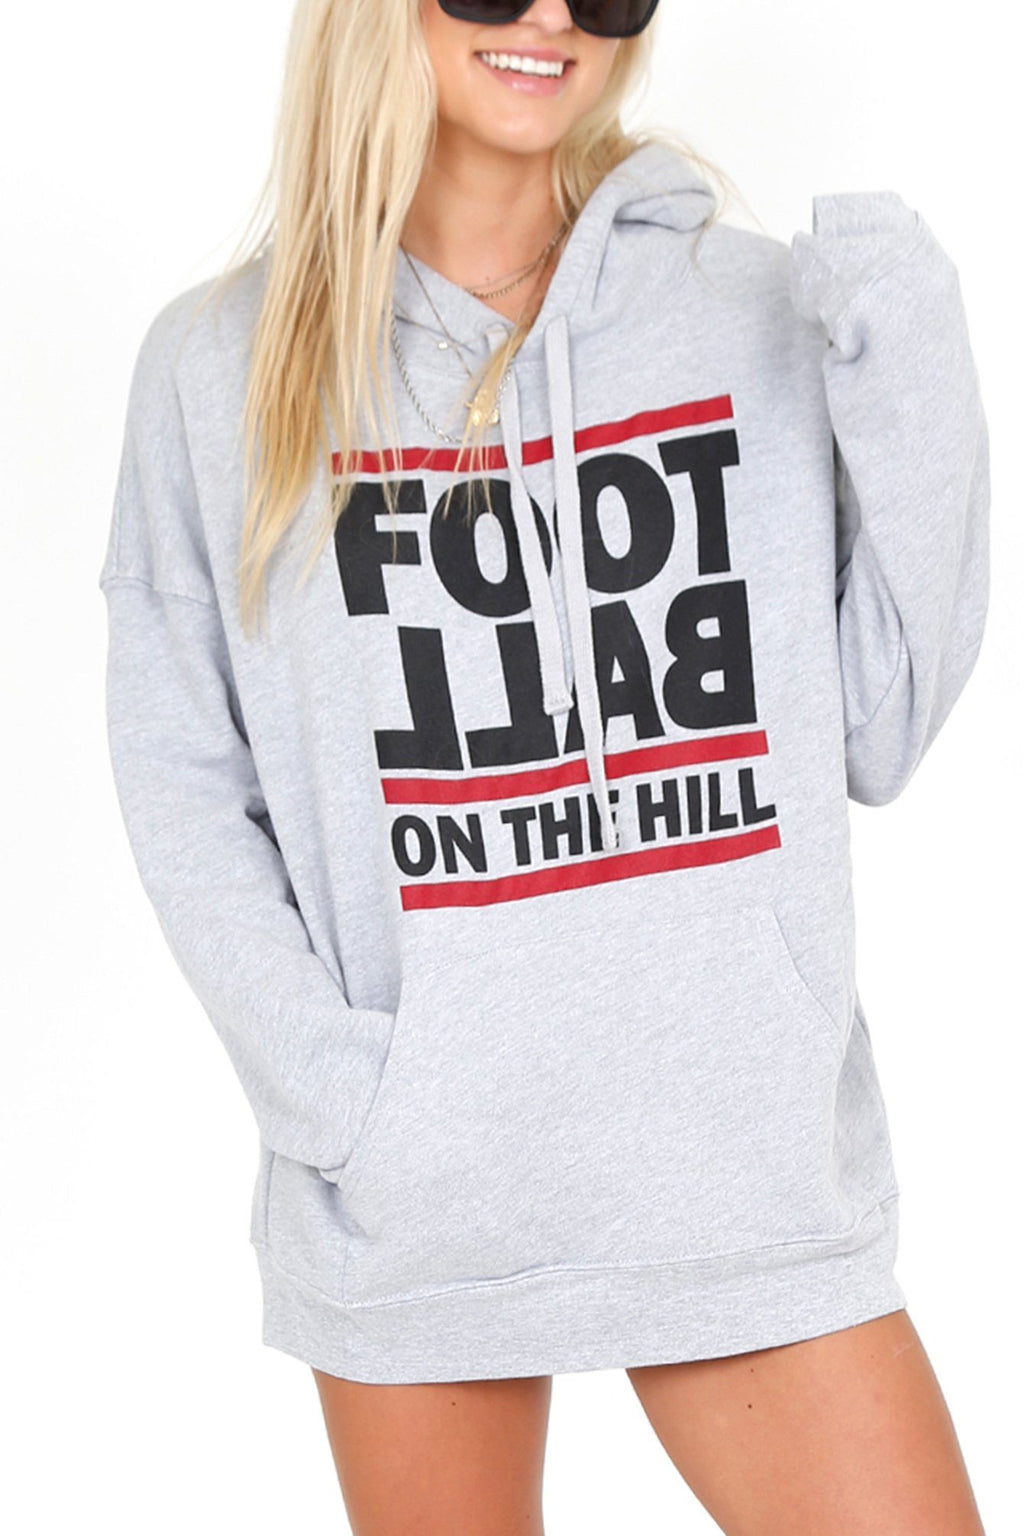 FOOTBALL On The Hill Sweatshirt